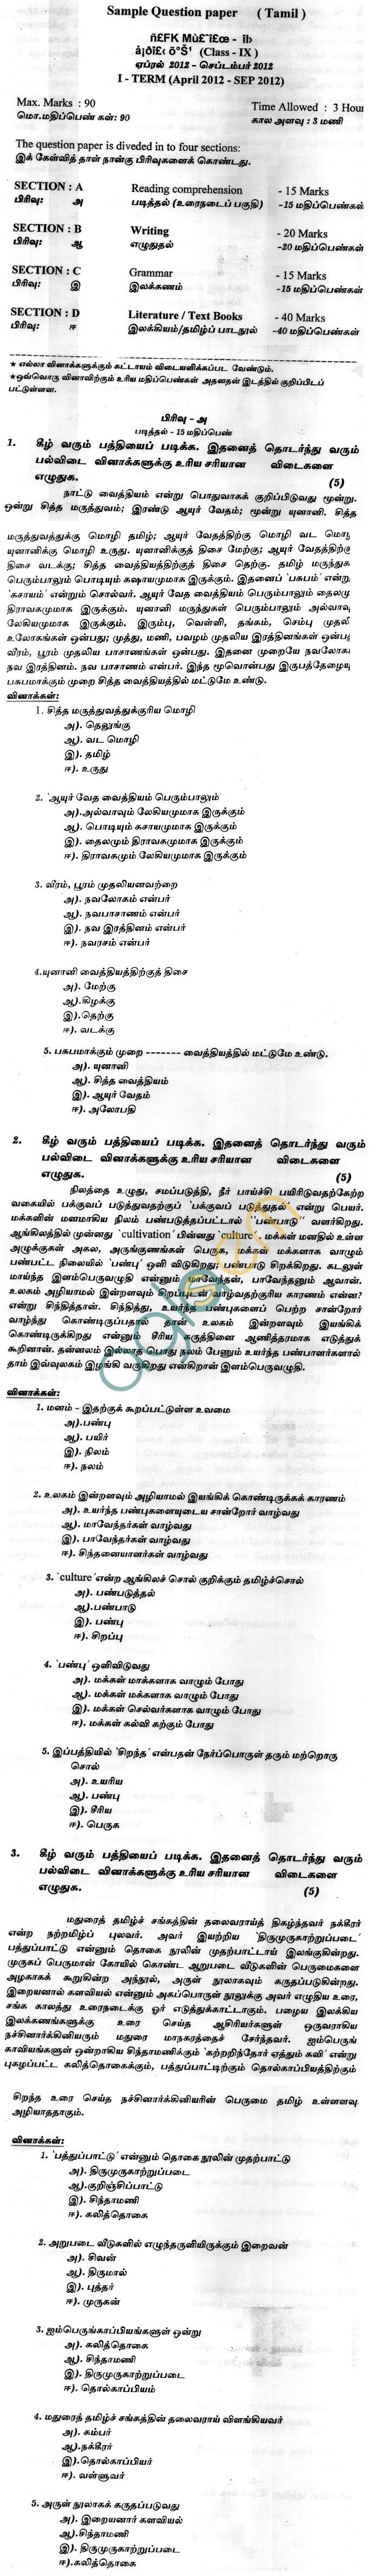 CBSE Board Exam 2013 Sample Papers (SA1) Class IX - Tamil